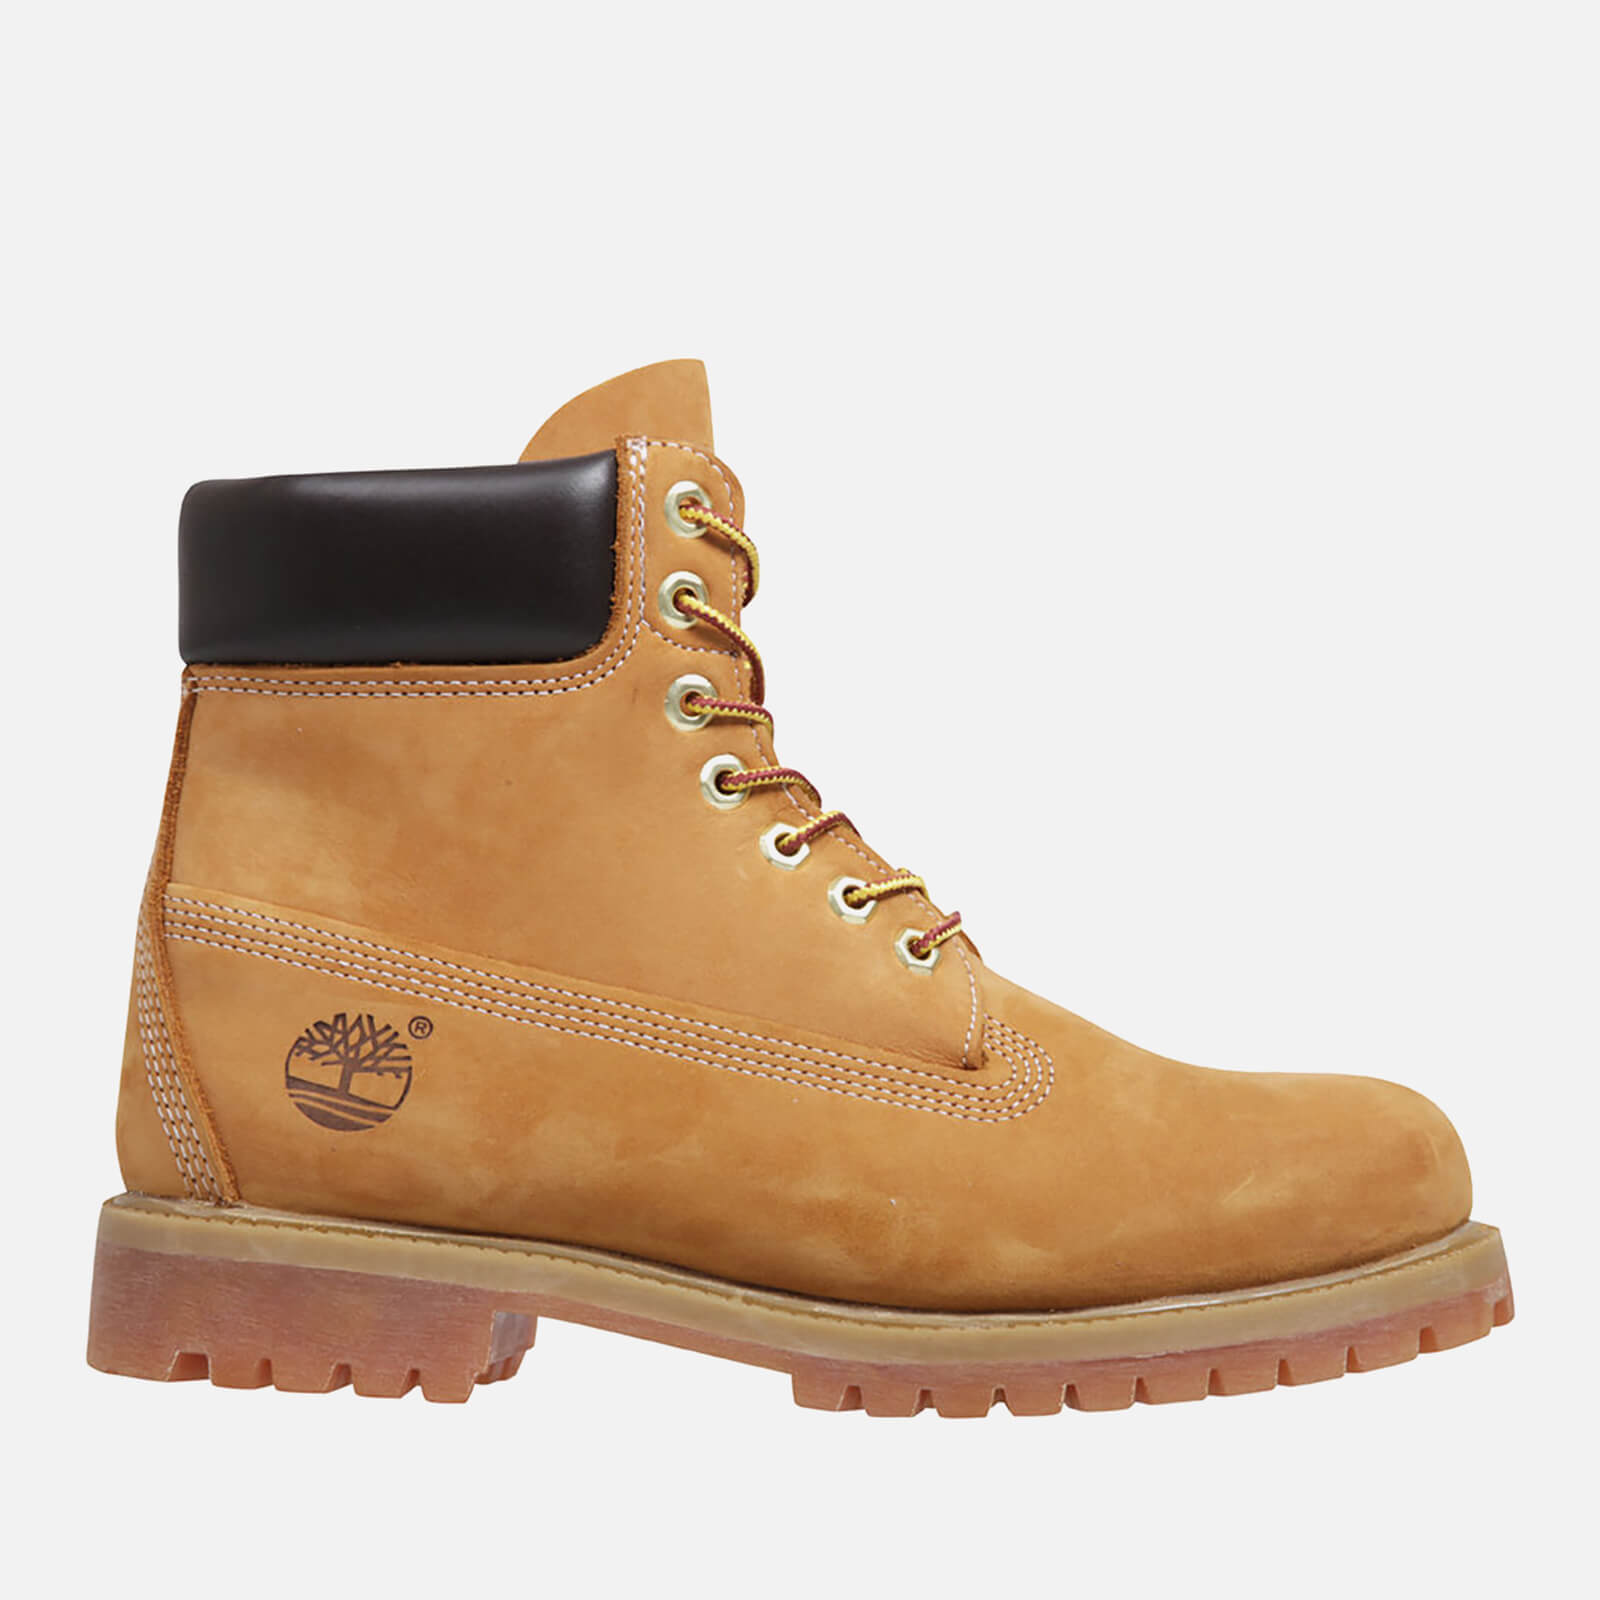 Timberland Mens 6 Inch Premium Waterproof Boots Wheat Uk 10